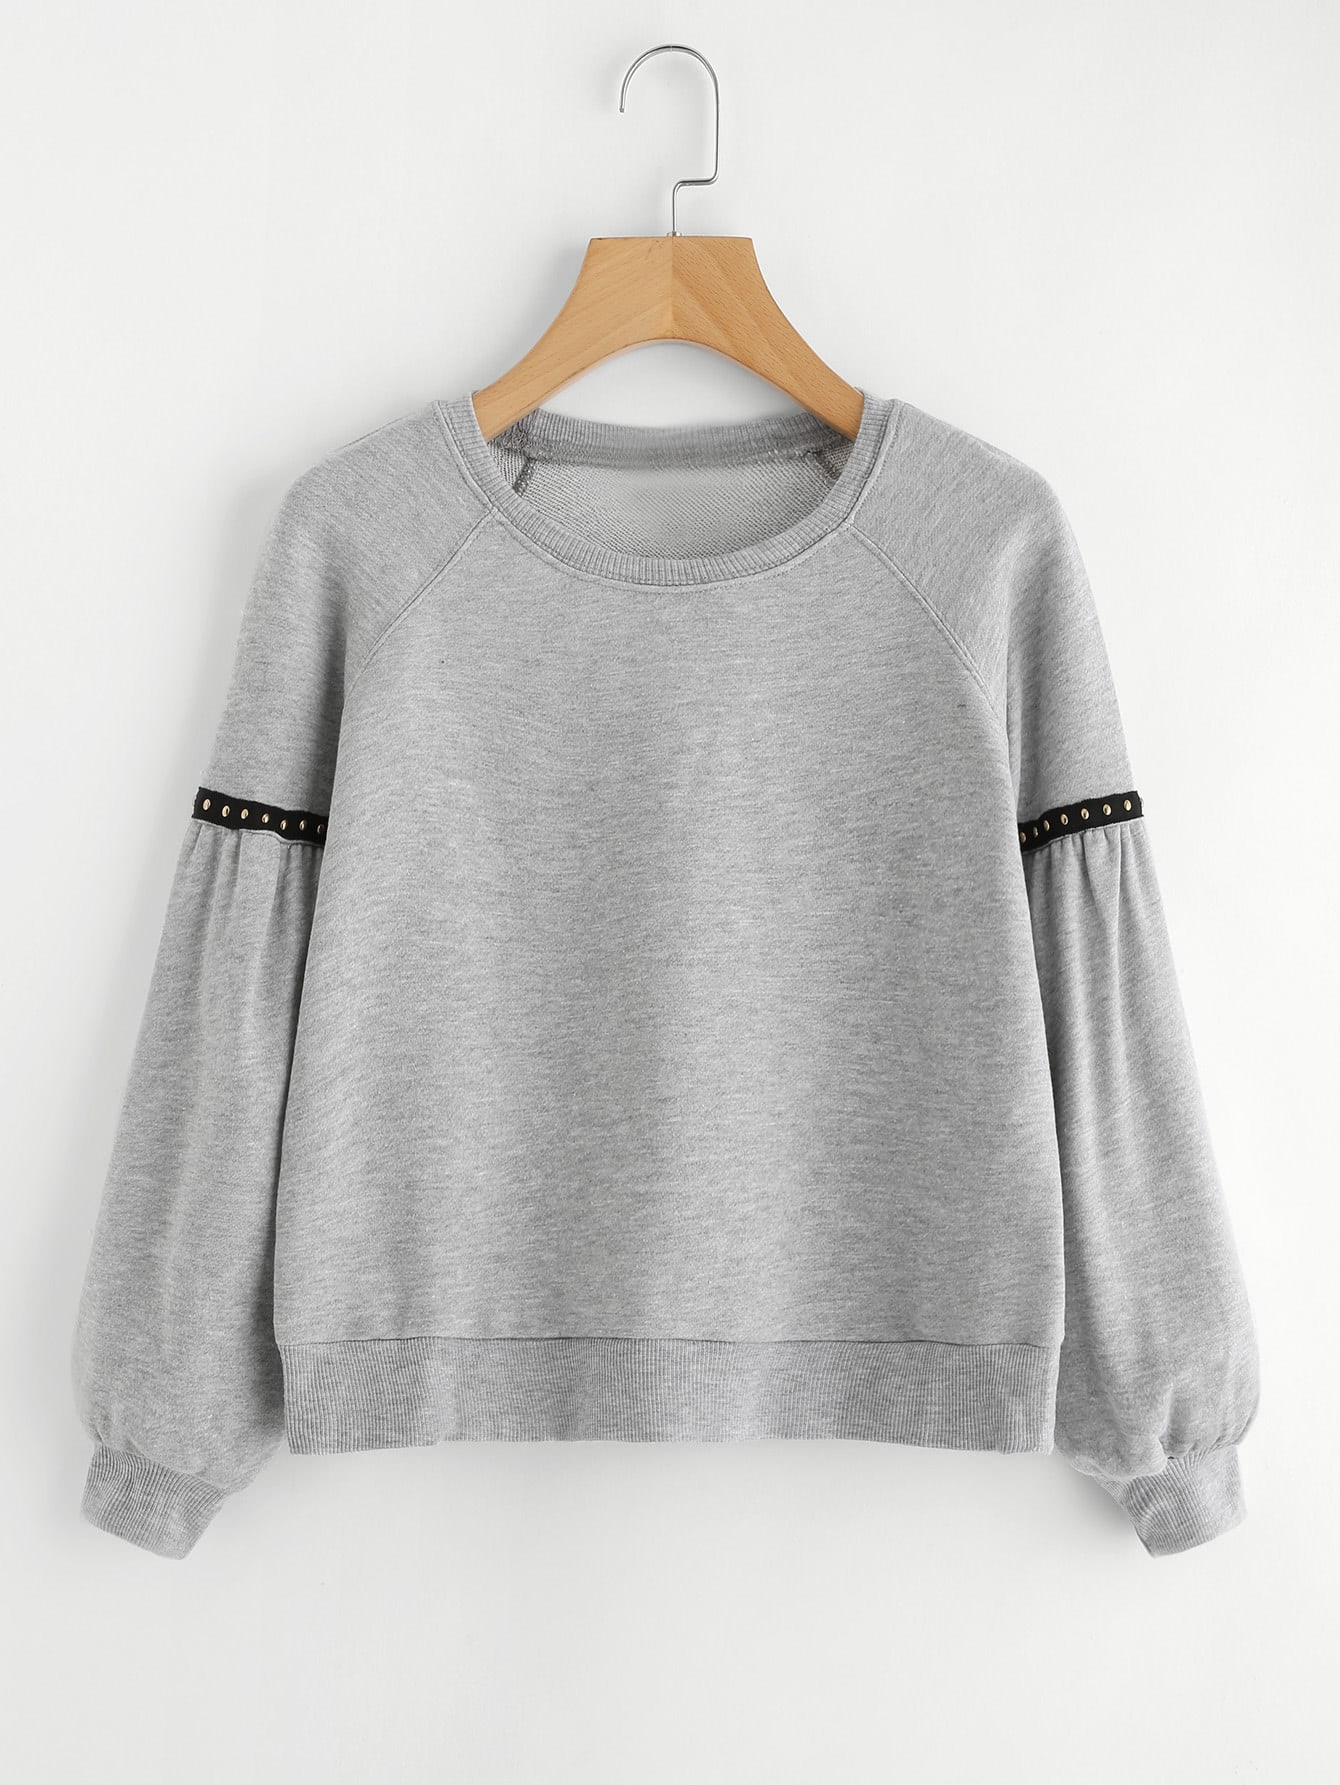 Ribbed Knit Trim Crop Sweatshirt dark grey ribbed trim drop shoulder lace up sweatshirt